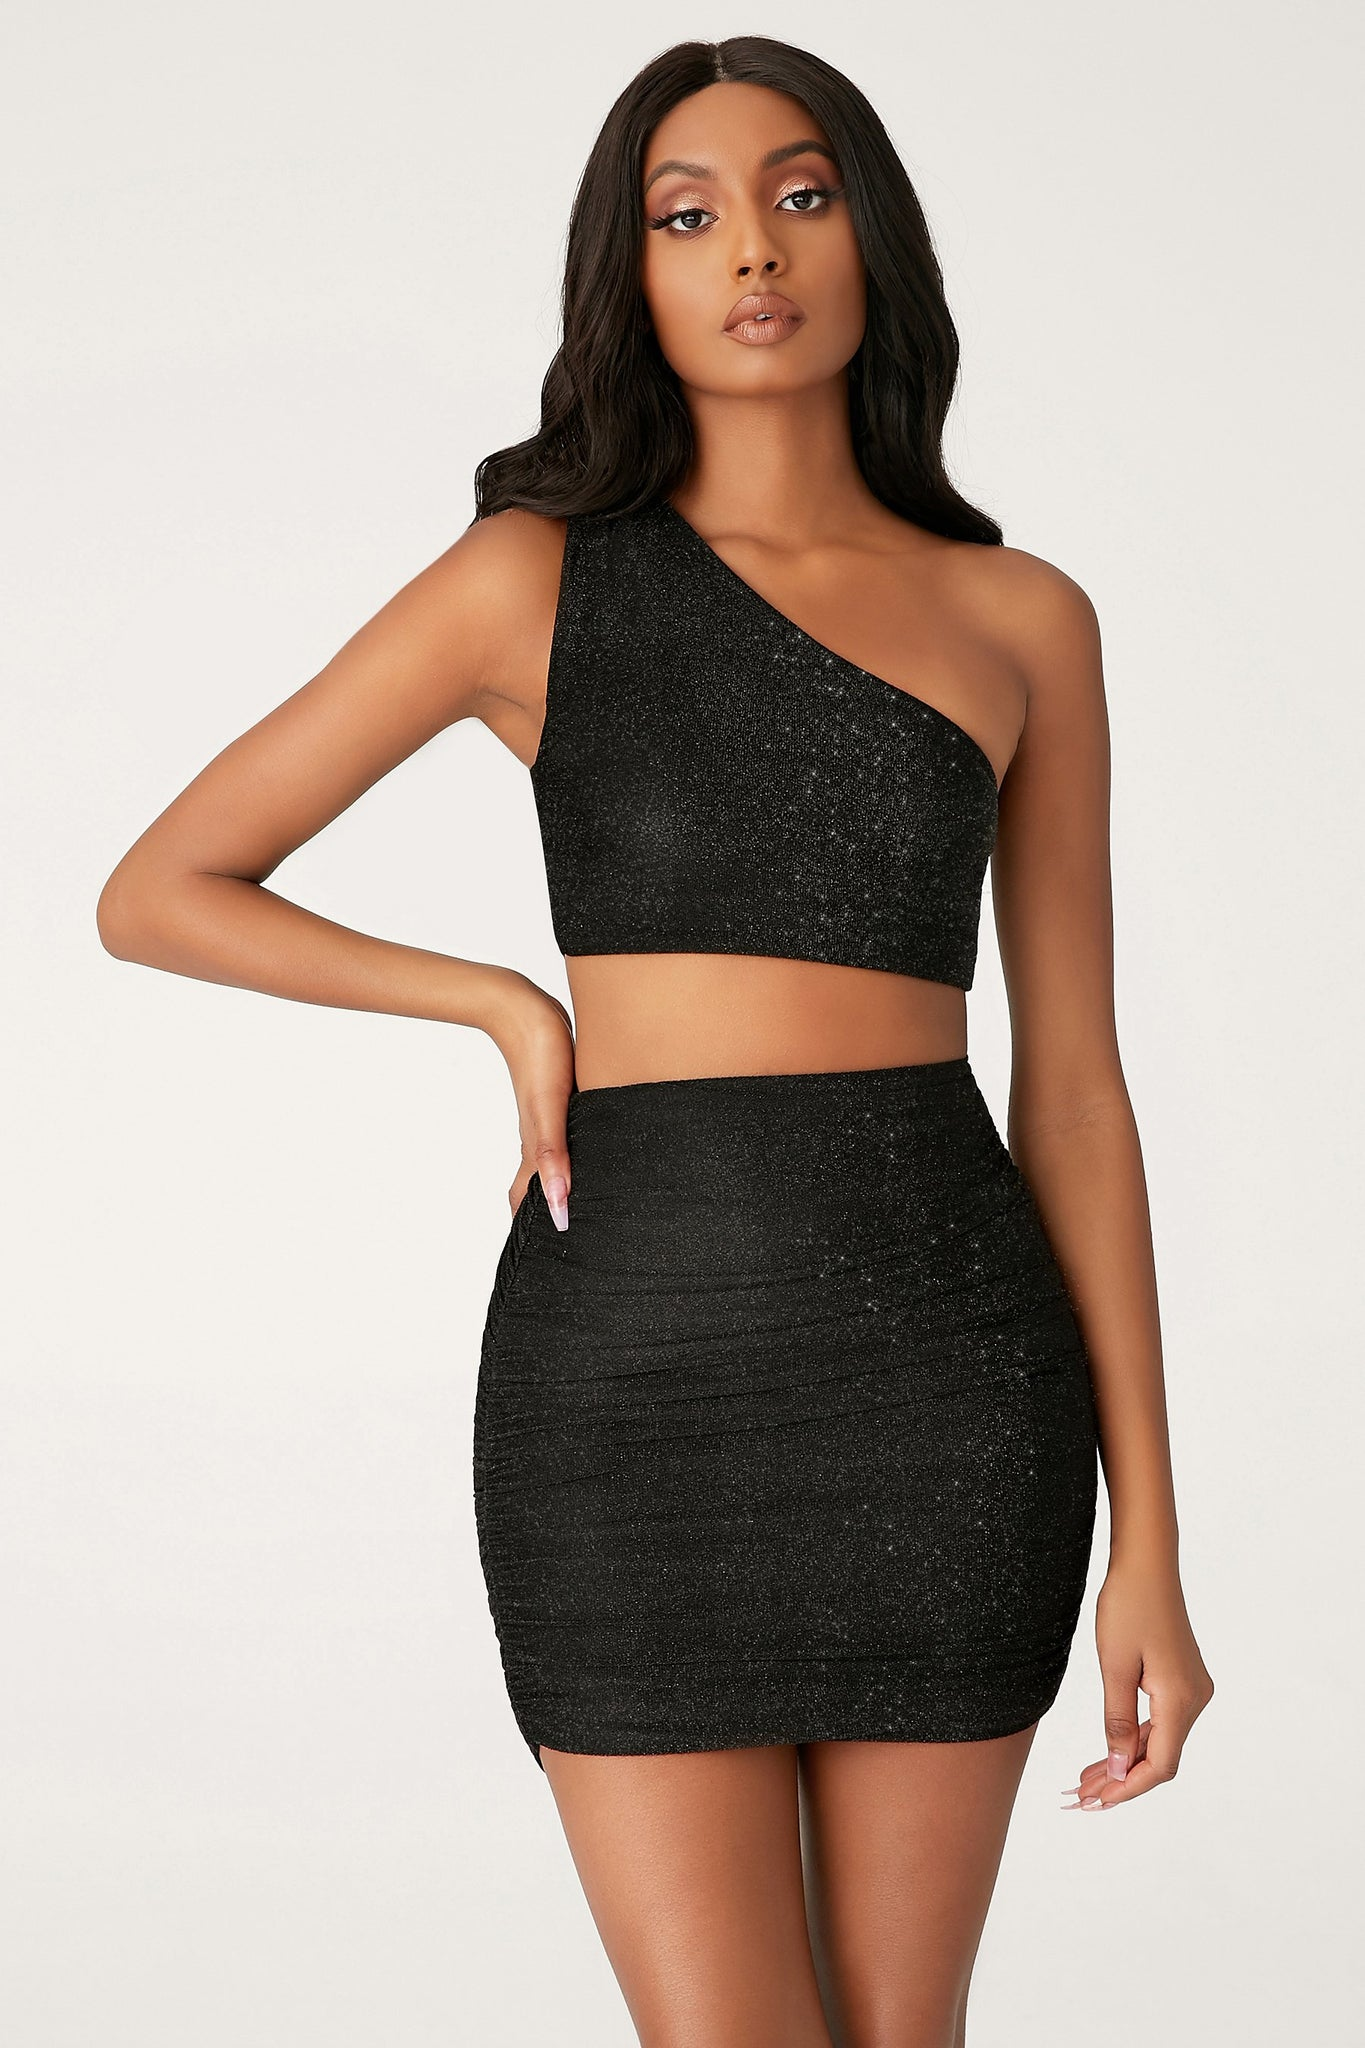 Lori One Shoulder Shimmer Crop Top - Black - MESHKI